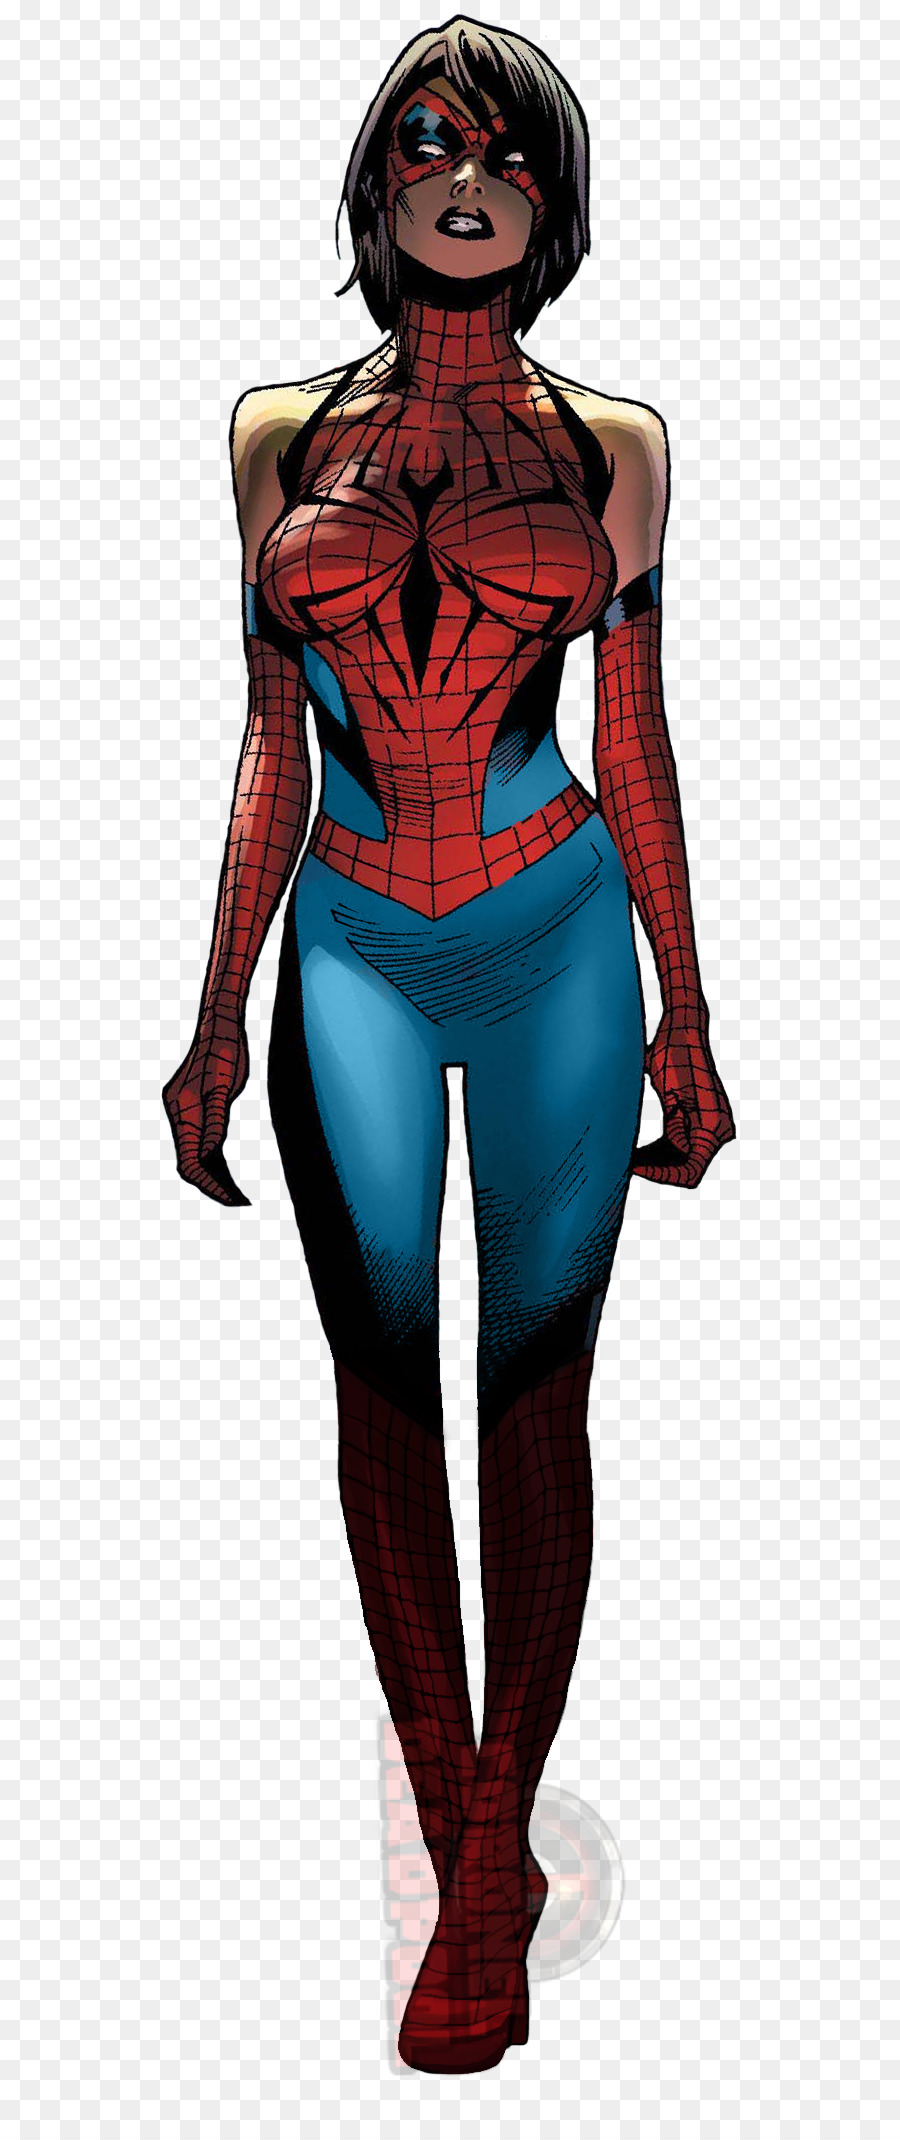 Spider-Man Deadpool Venom Spider-Woman (Jessica Drew) - bitch & Spider-Man Deadpool Venom Spider-Woman (Jessica Drew) - bitch png ...